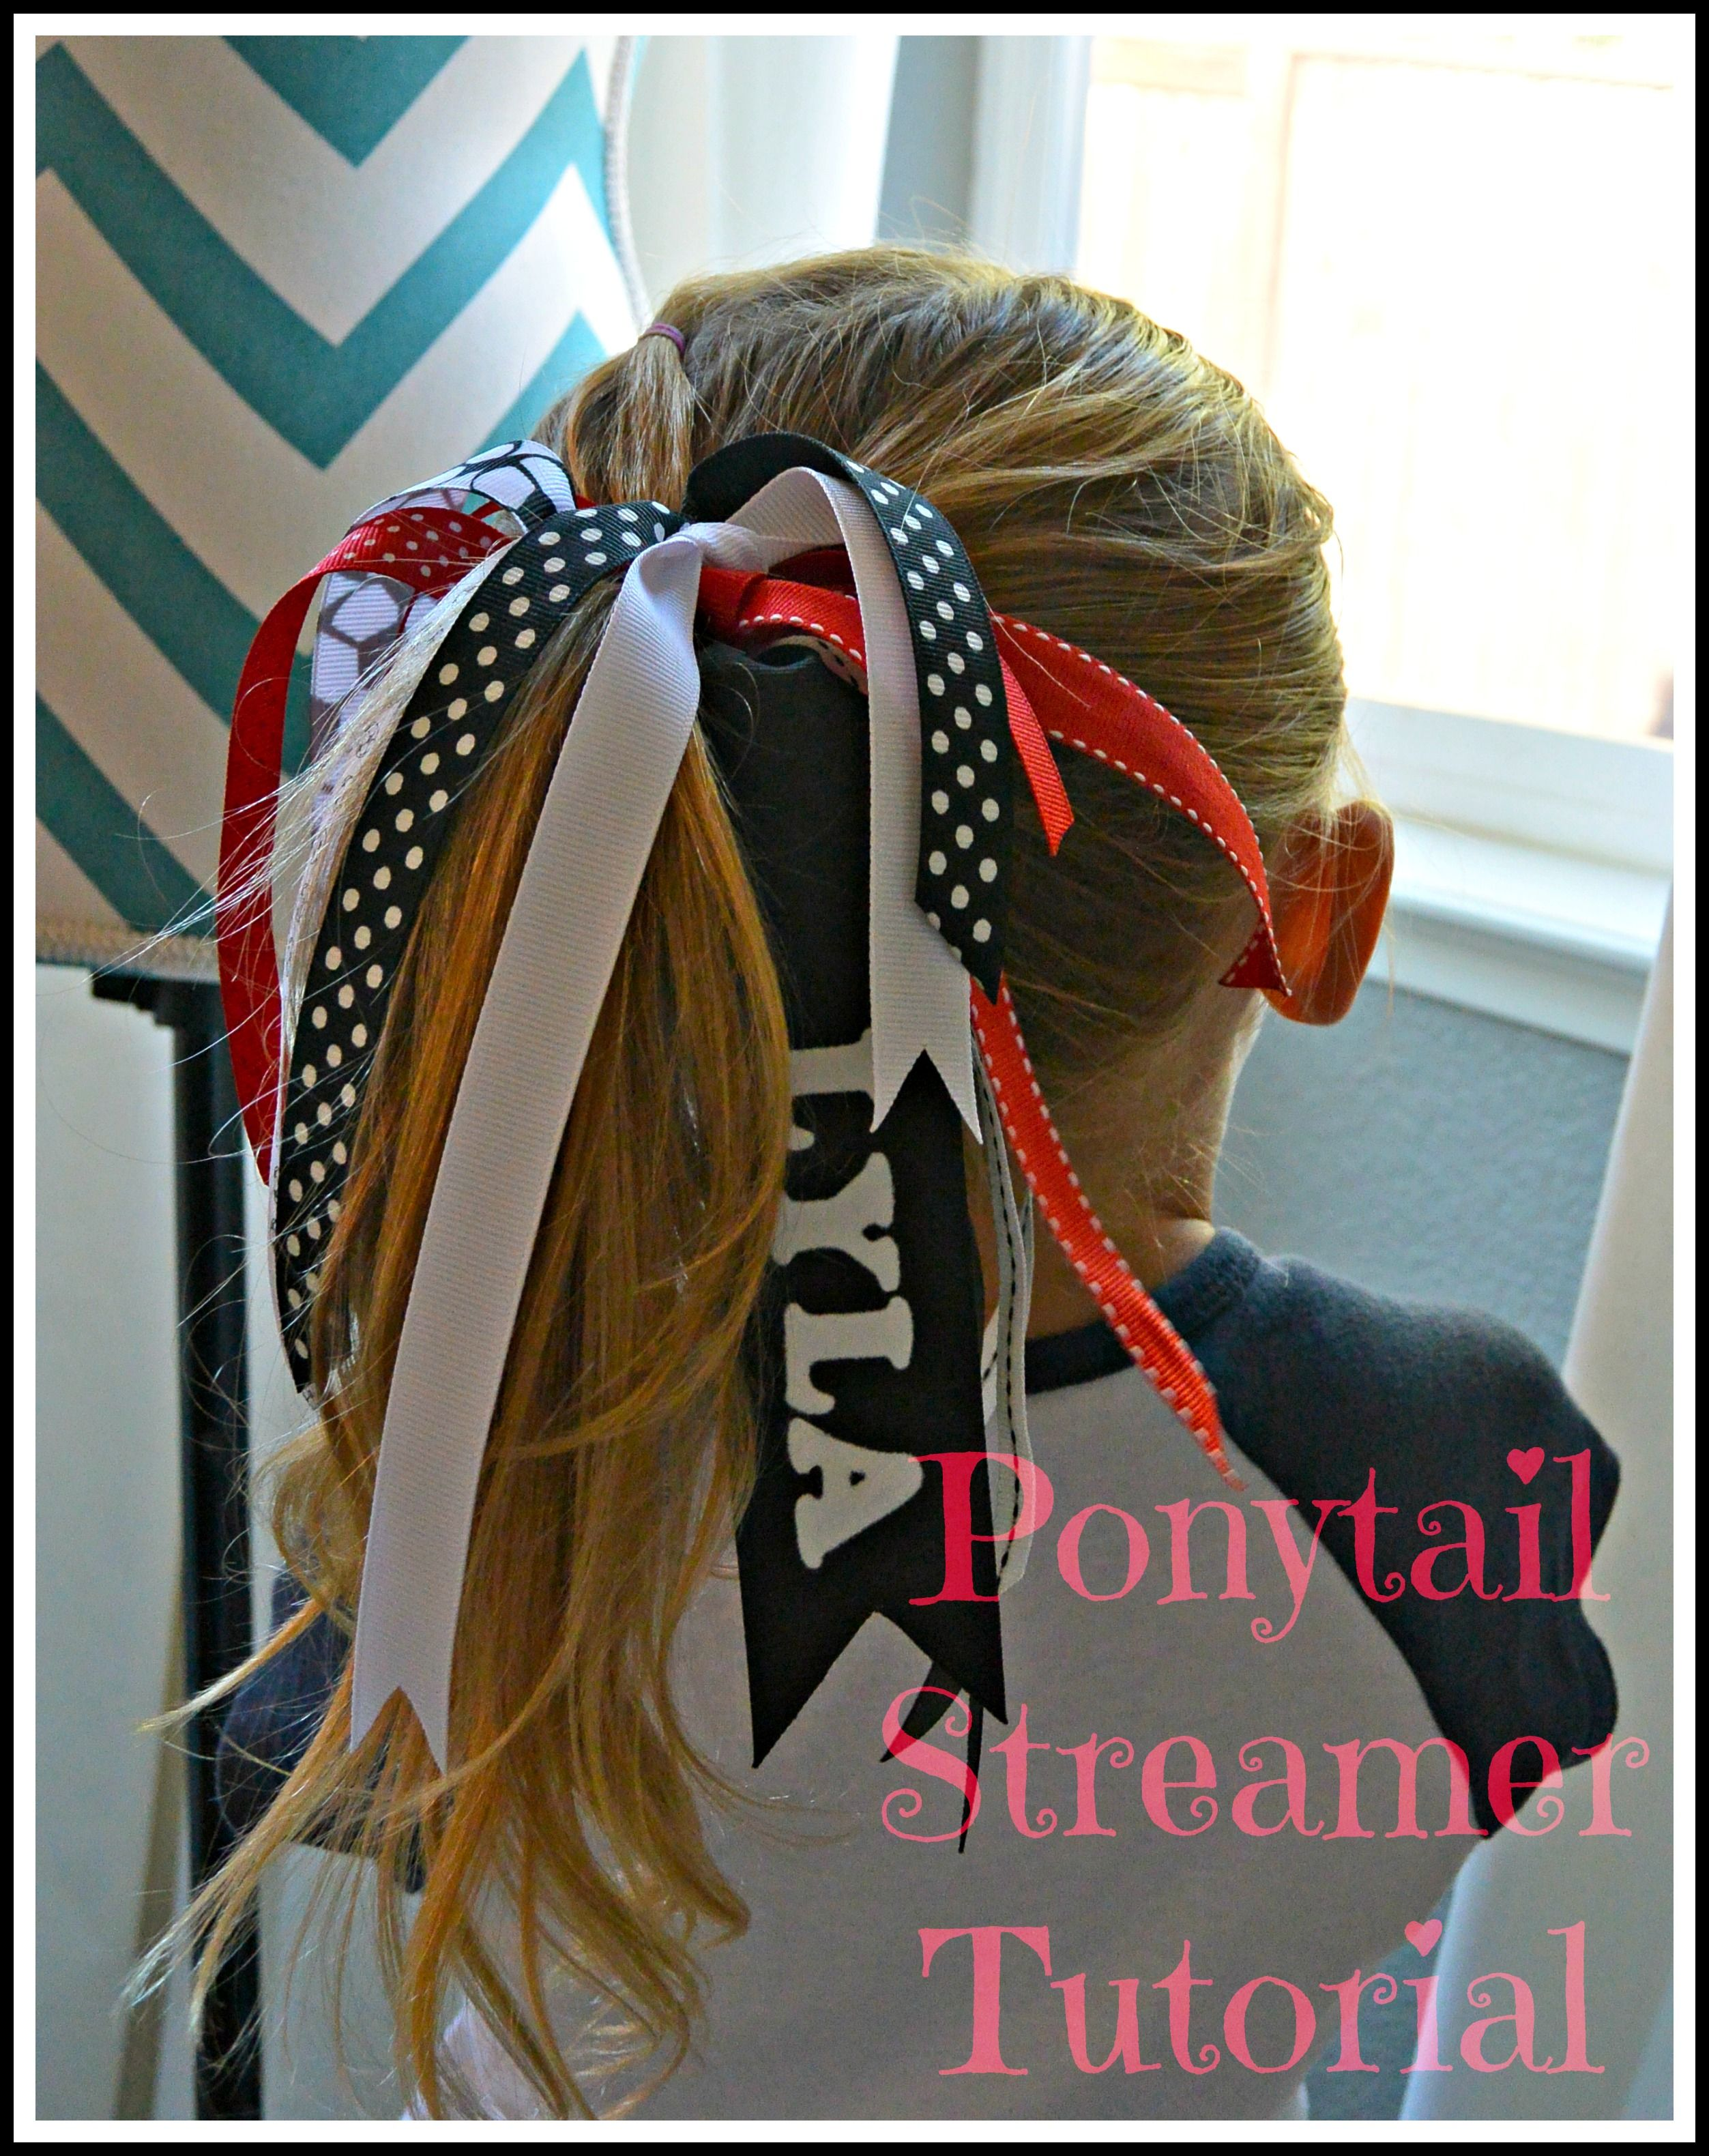 Ha hair bow ribbon wholesale - My New Go To Place For Grosgrain Ribbon Only 69 For 5 Yards Of The Smallest Width Cannot Beat That The Baby Bow Tique Pinterest Yards Bows